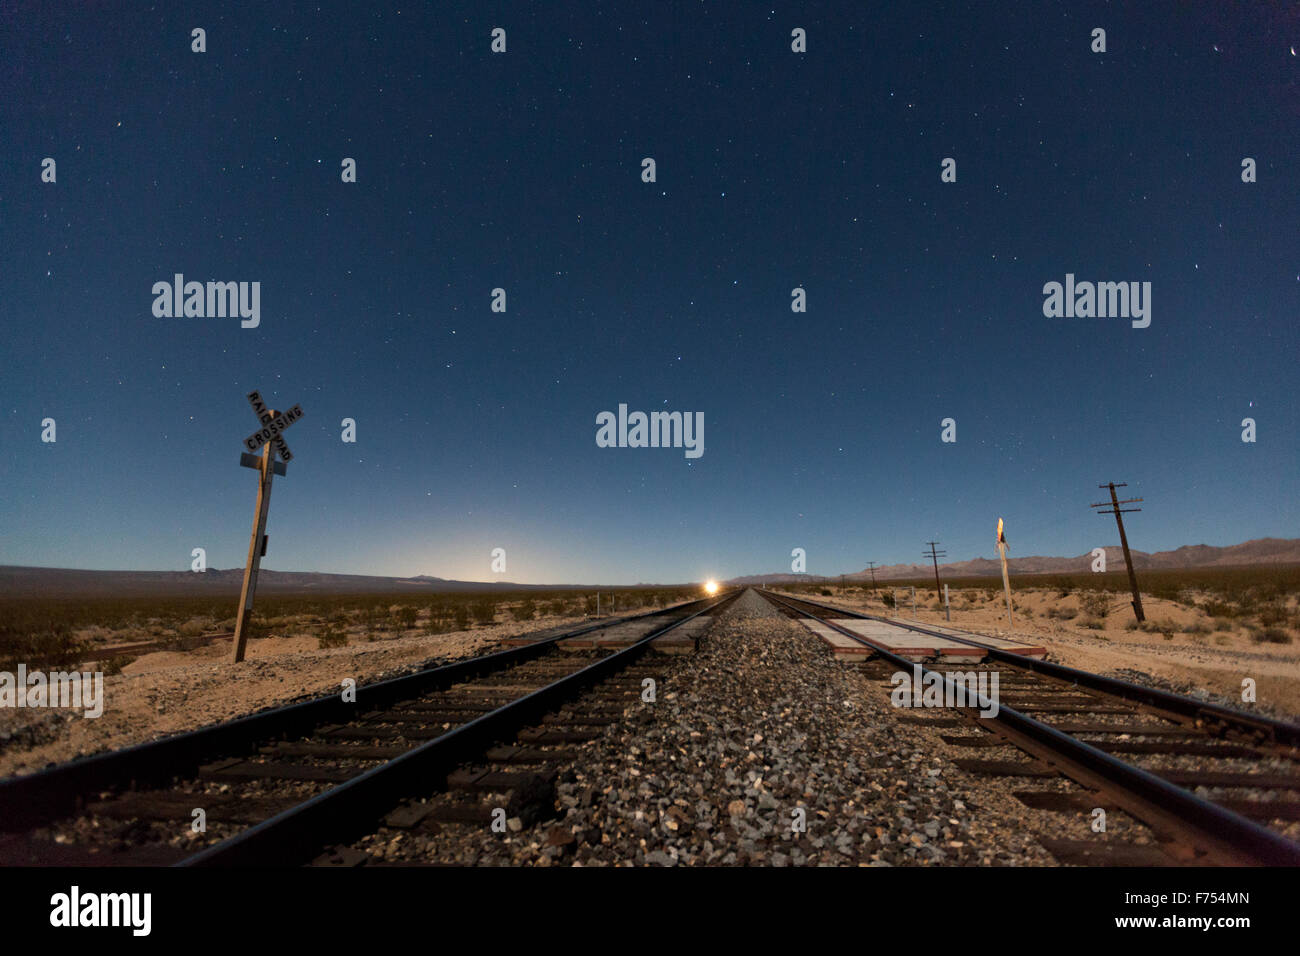 Railroads to the Big Dipper - Stock Image